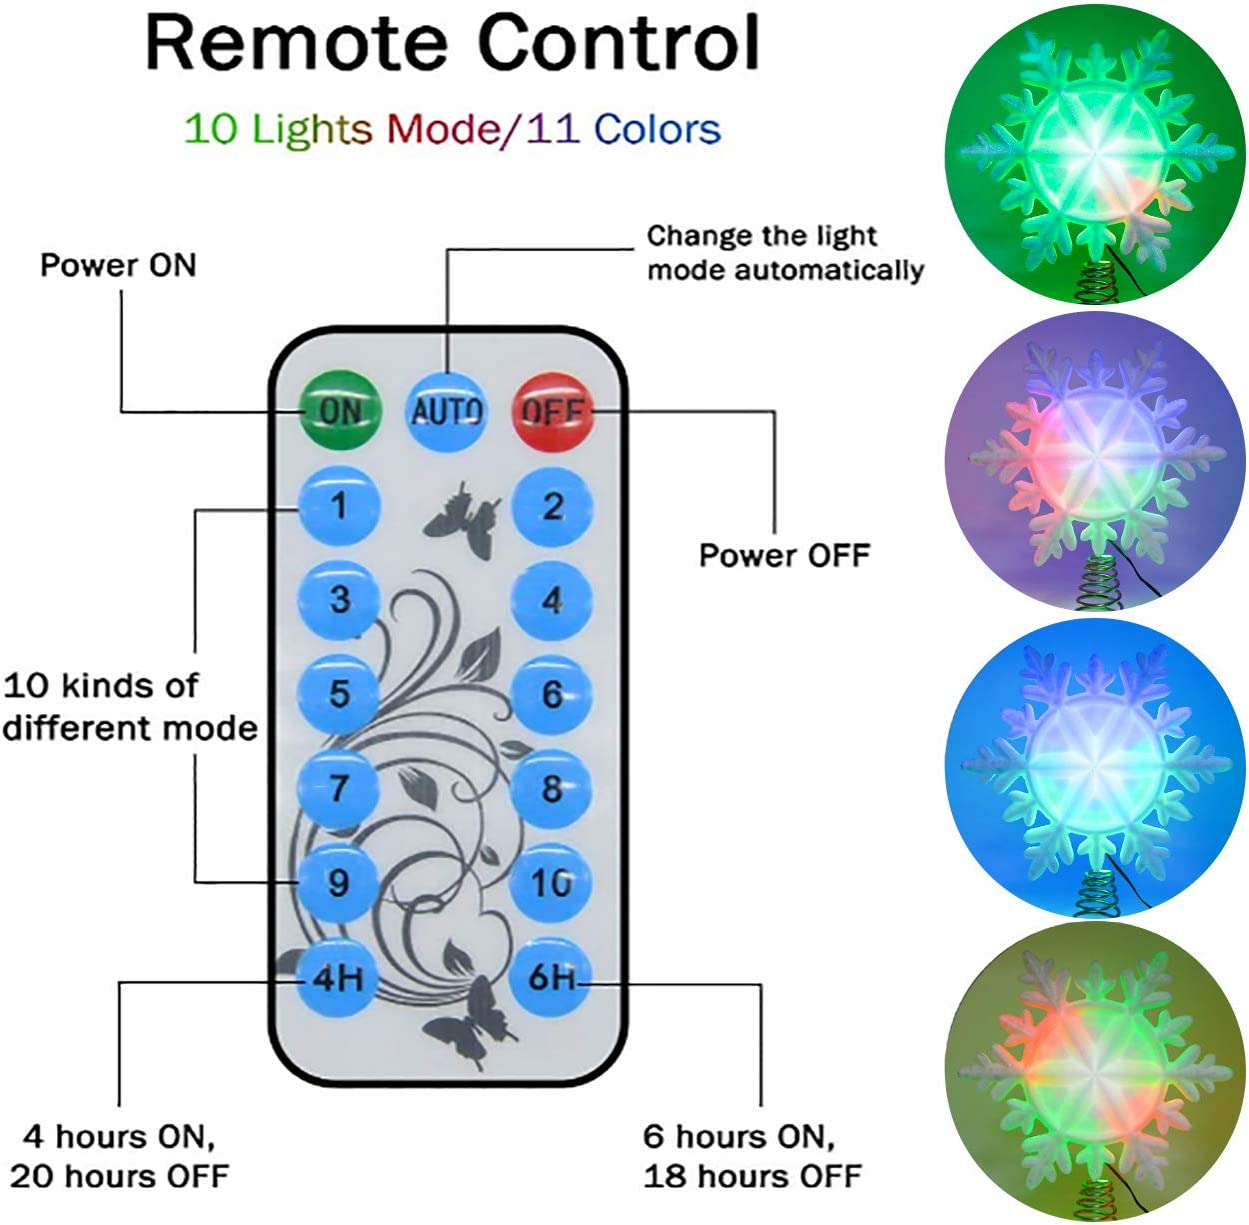 LED RGB Treetop with Timer IP44 Waterproof Xmas Home Decorations Yocuby Christmas Tree Topper Remote Control Wall Light for Indoor and Outdoor